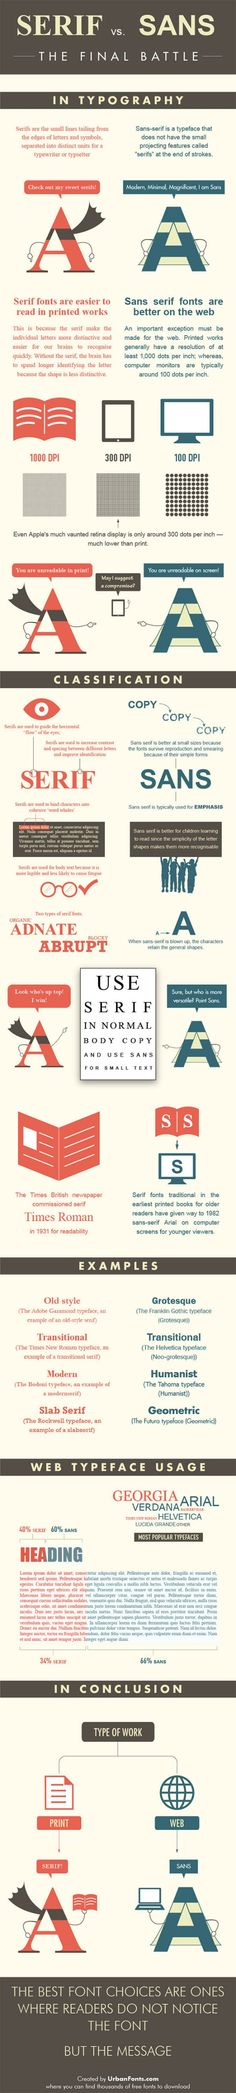 Typography :: What You Need to Know About Serif vs Sans Serif Fonts